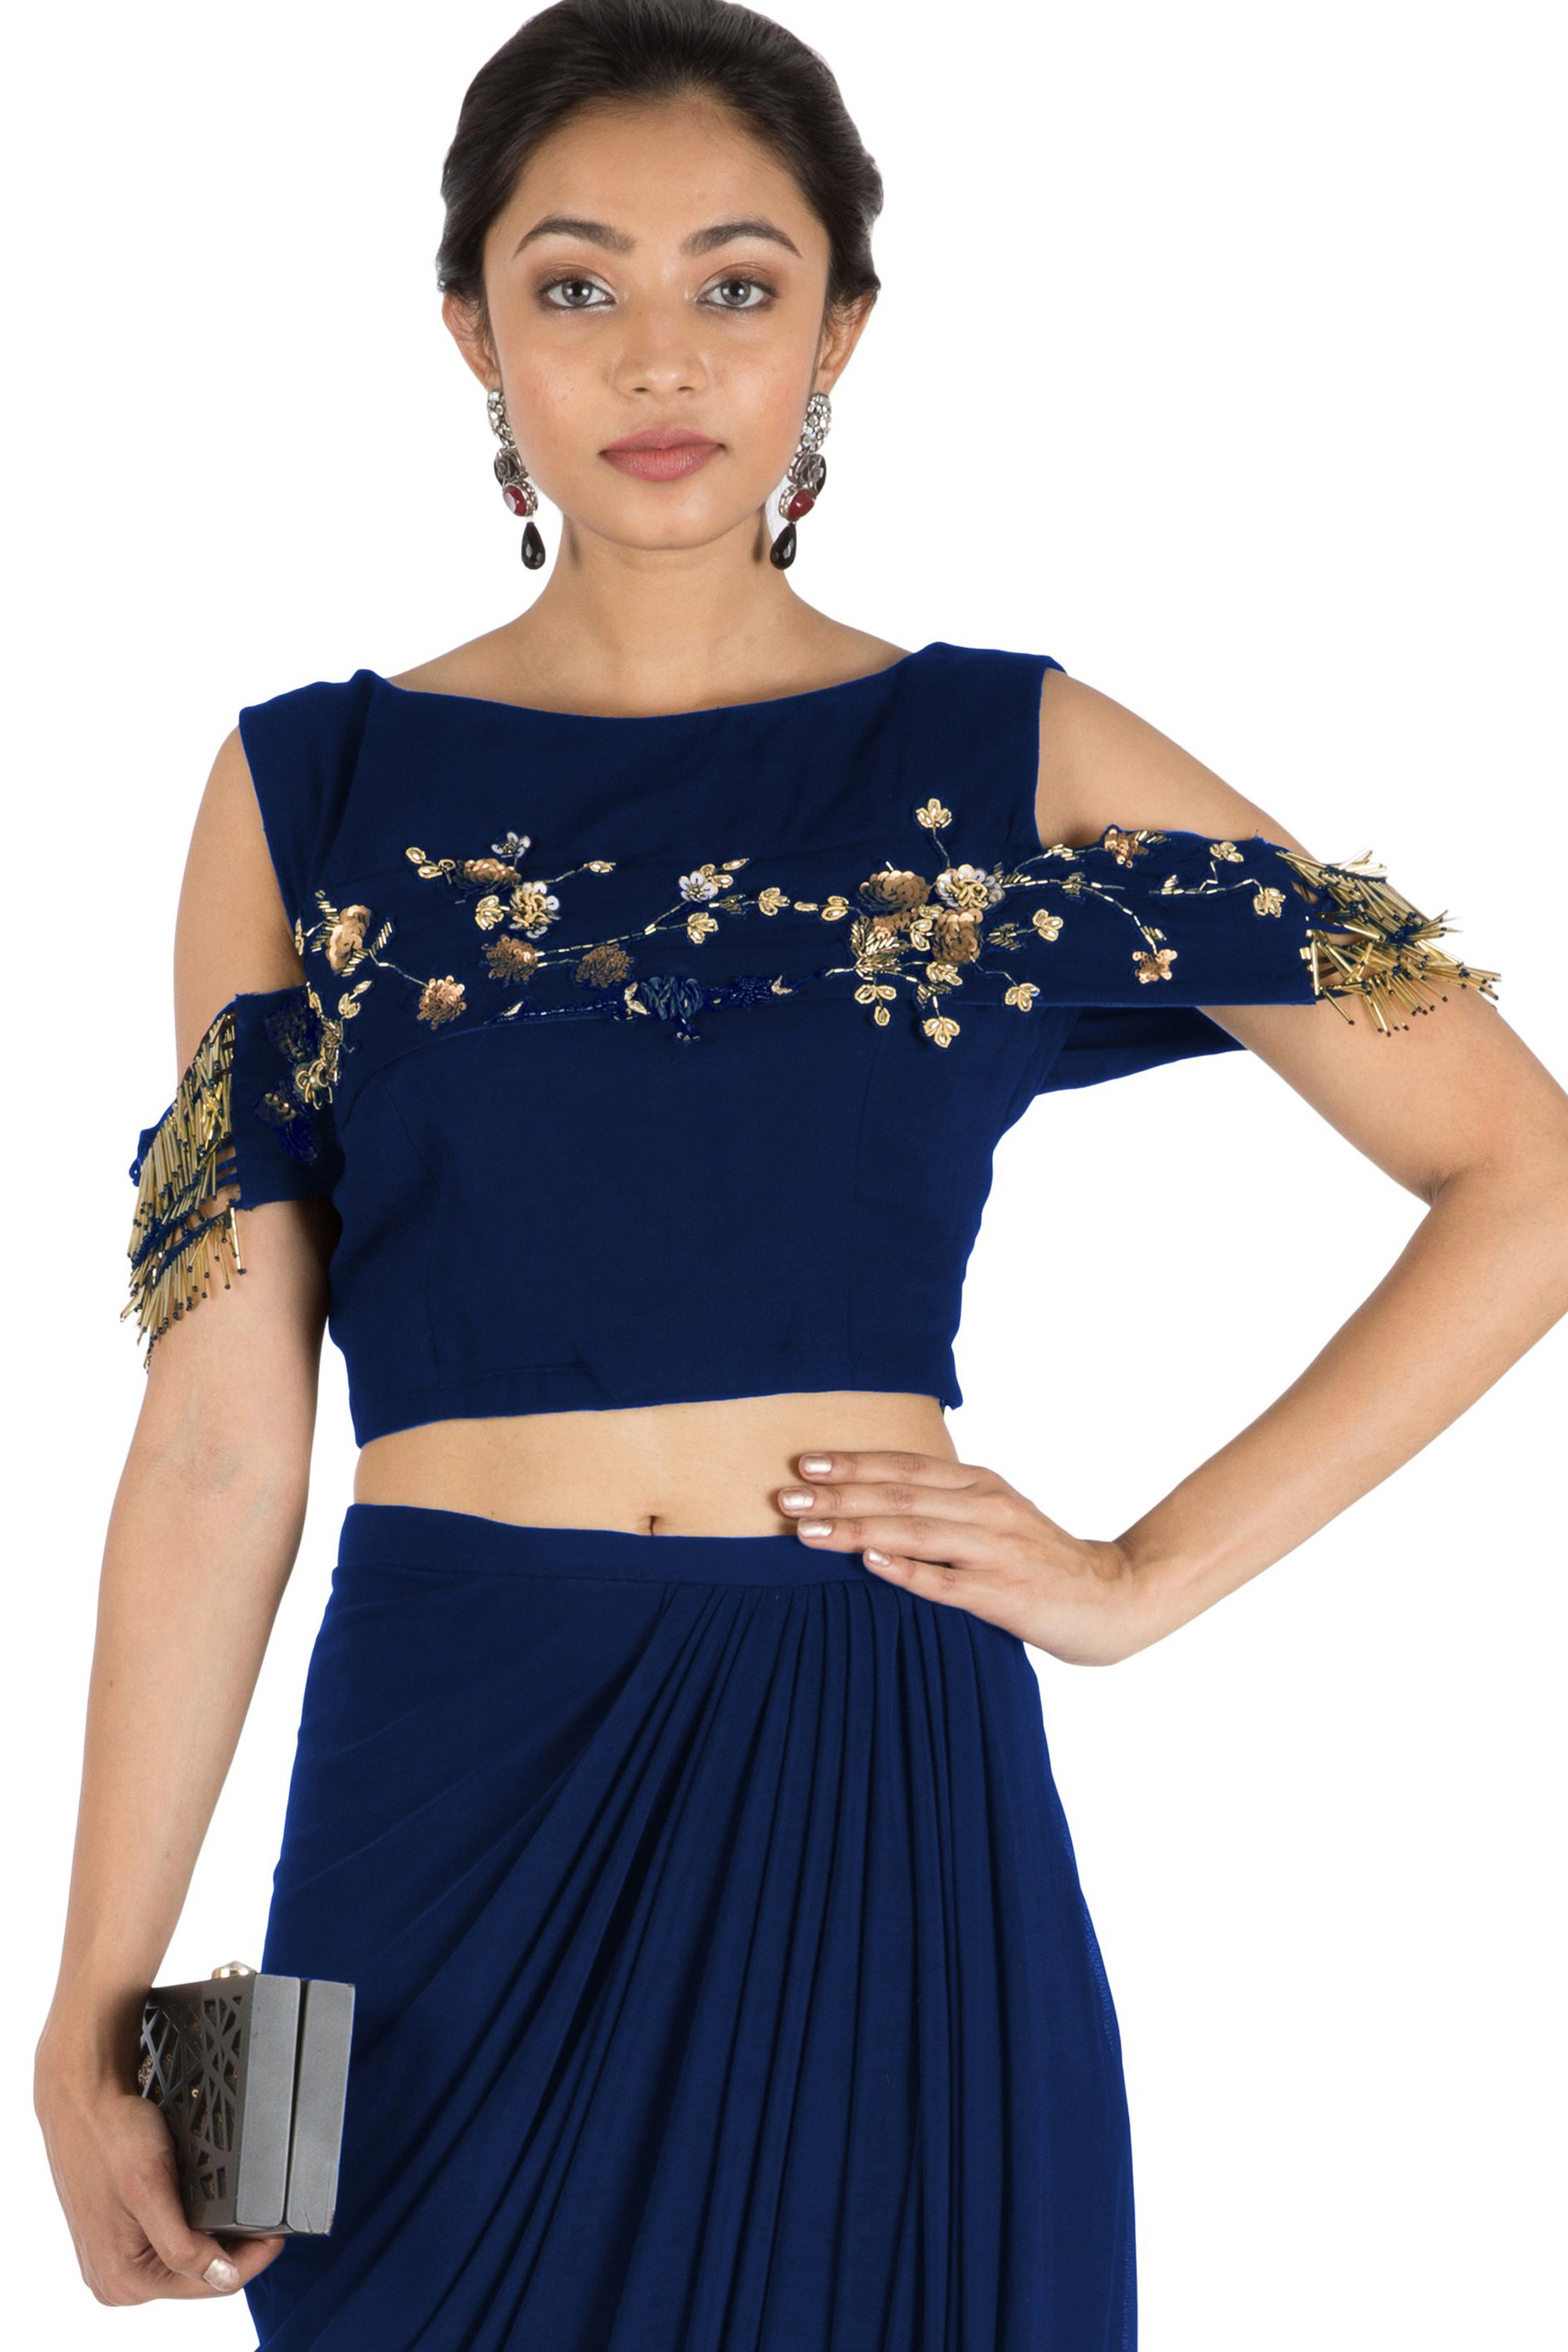 65dfc8c86 ... Navy Blue Bandeau Crop Top and Dhoti Skirt CloseUp